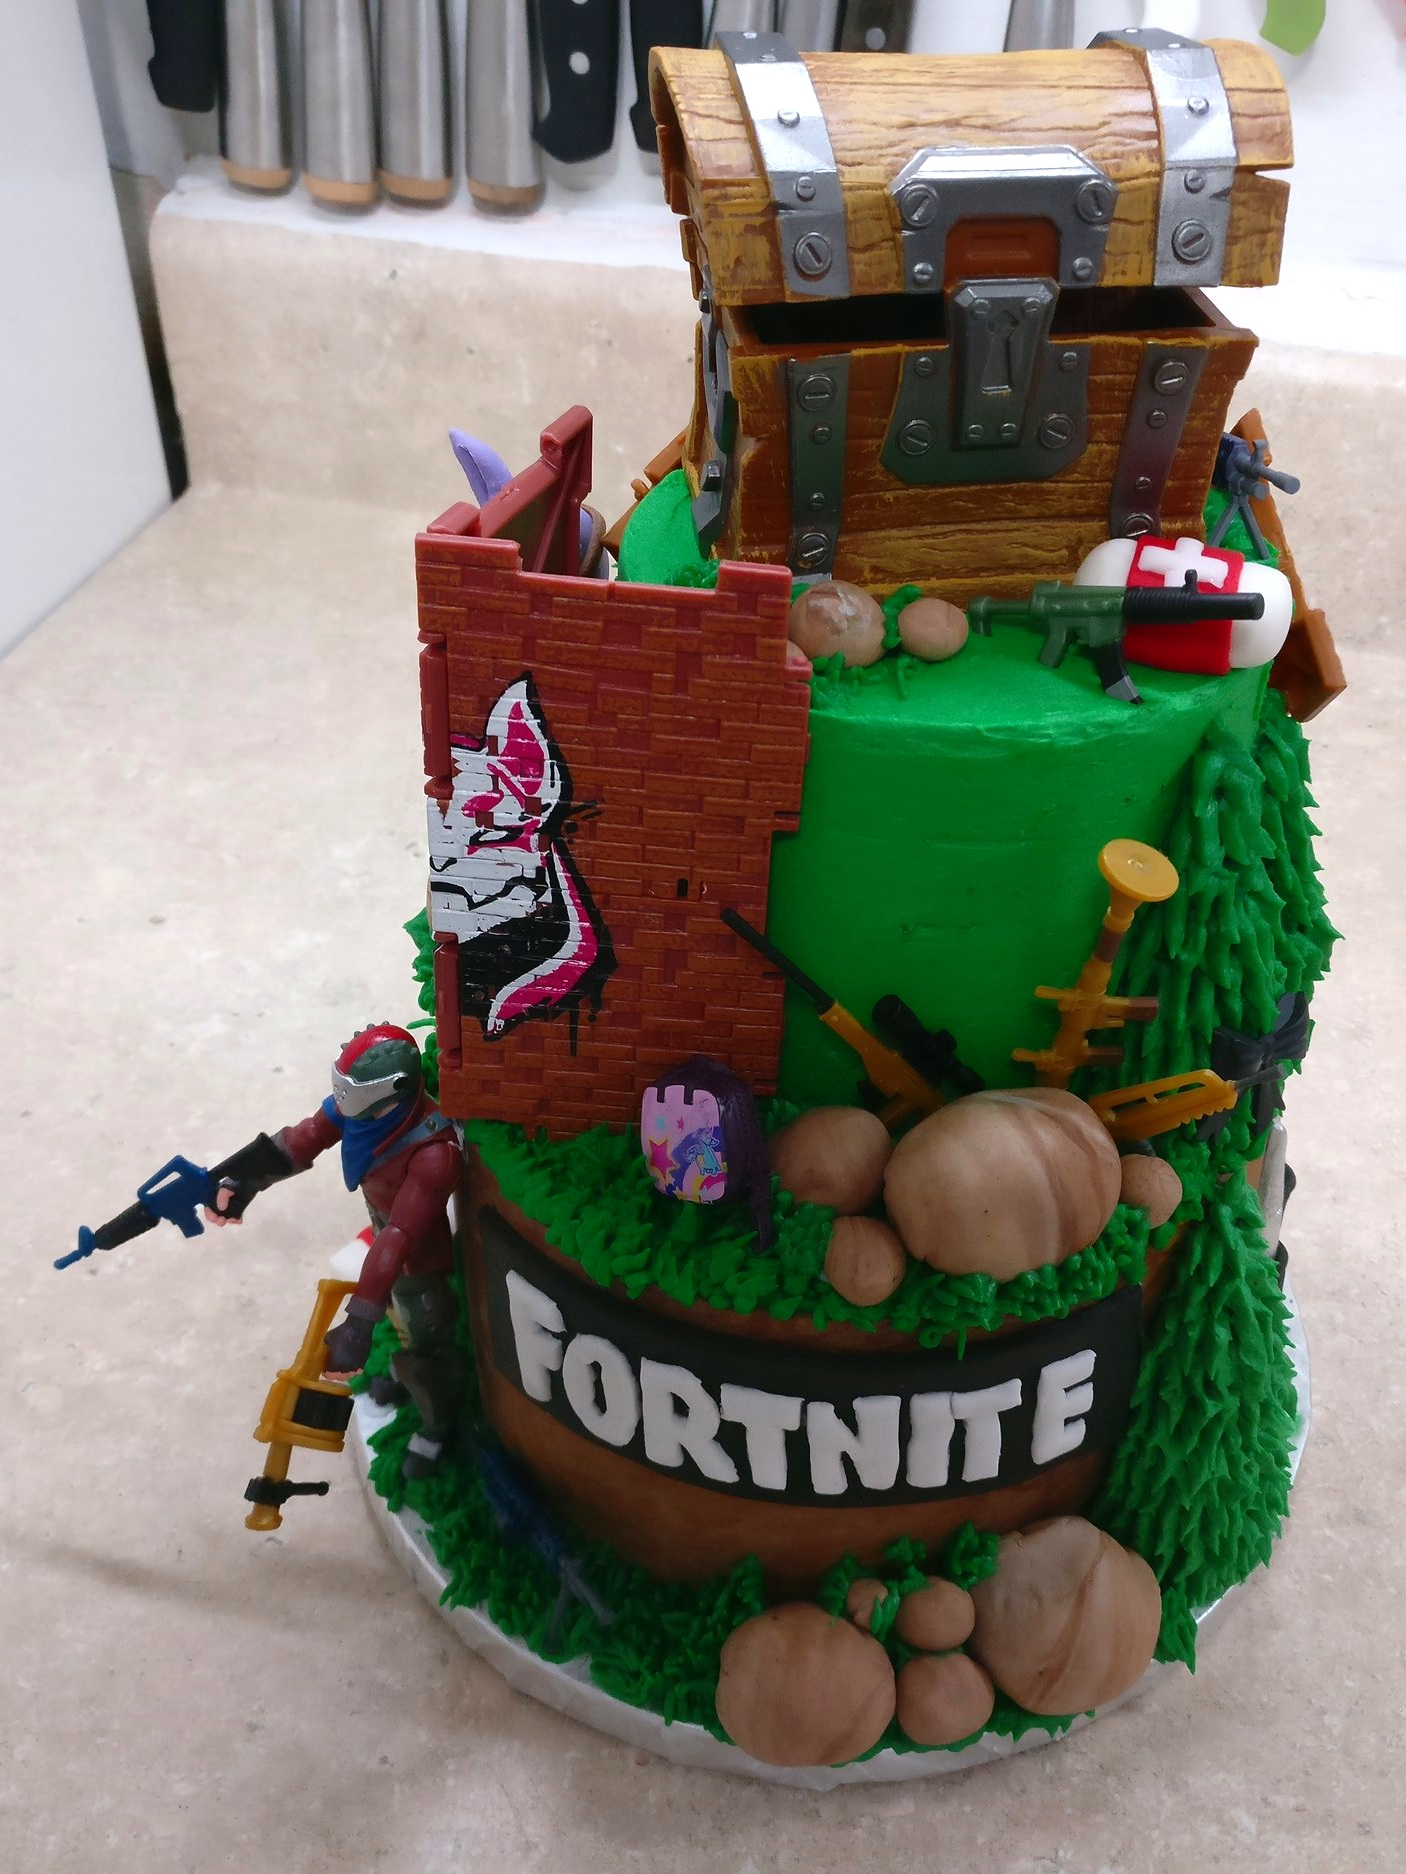 Fortnite Cake Honeybrie Sweets Fortnite fans can unlock fresh rewards by completing challenges as part of the birthday event. fortnite cake honeybrie sweets